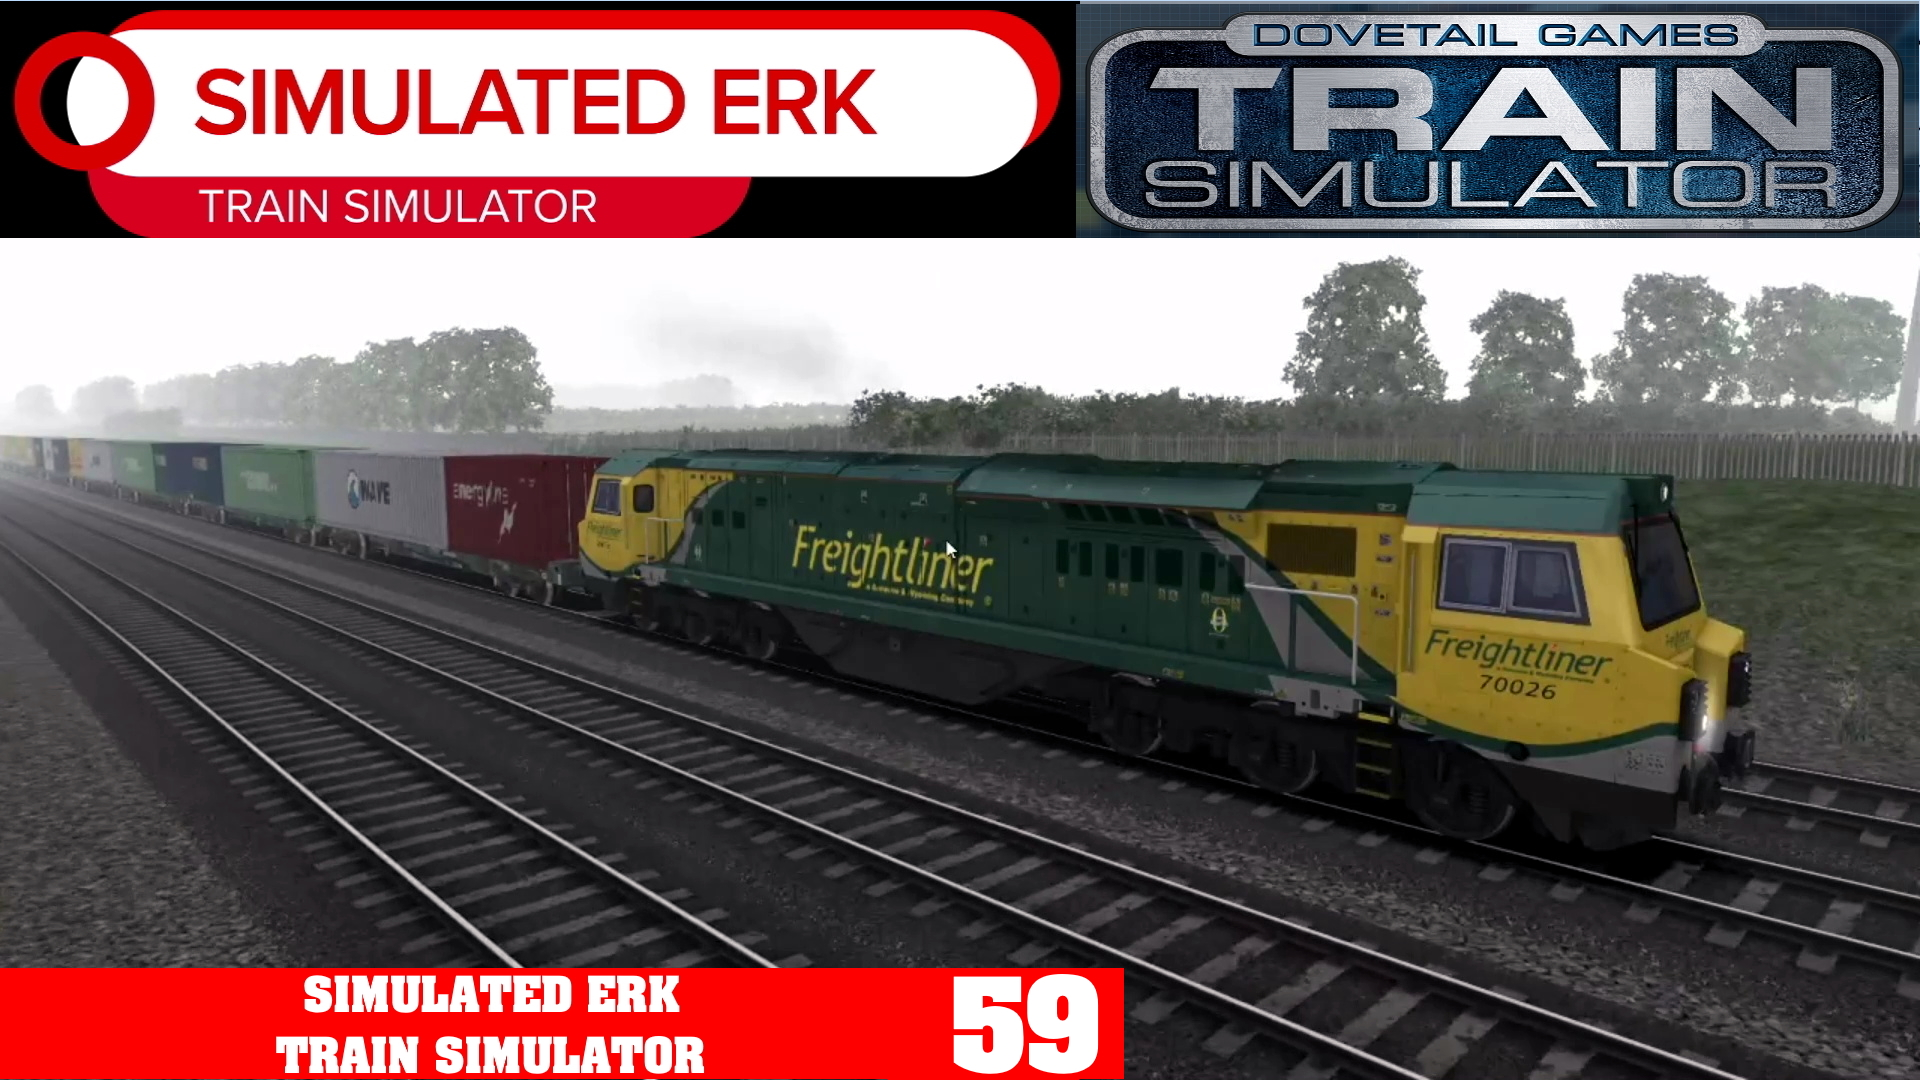 Simulated Erk: Train Simulator episode 59 | Containing The Freightliner